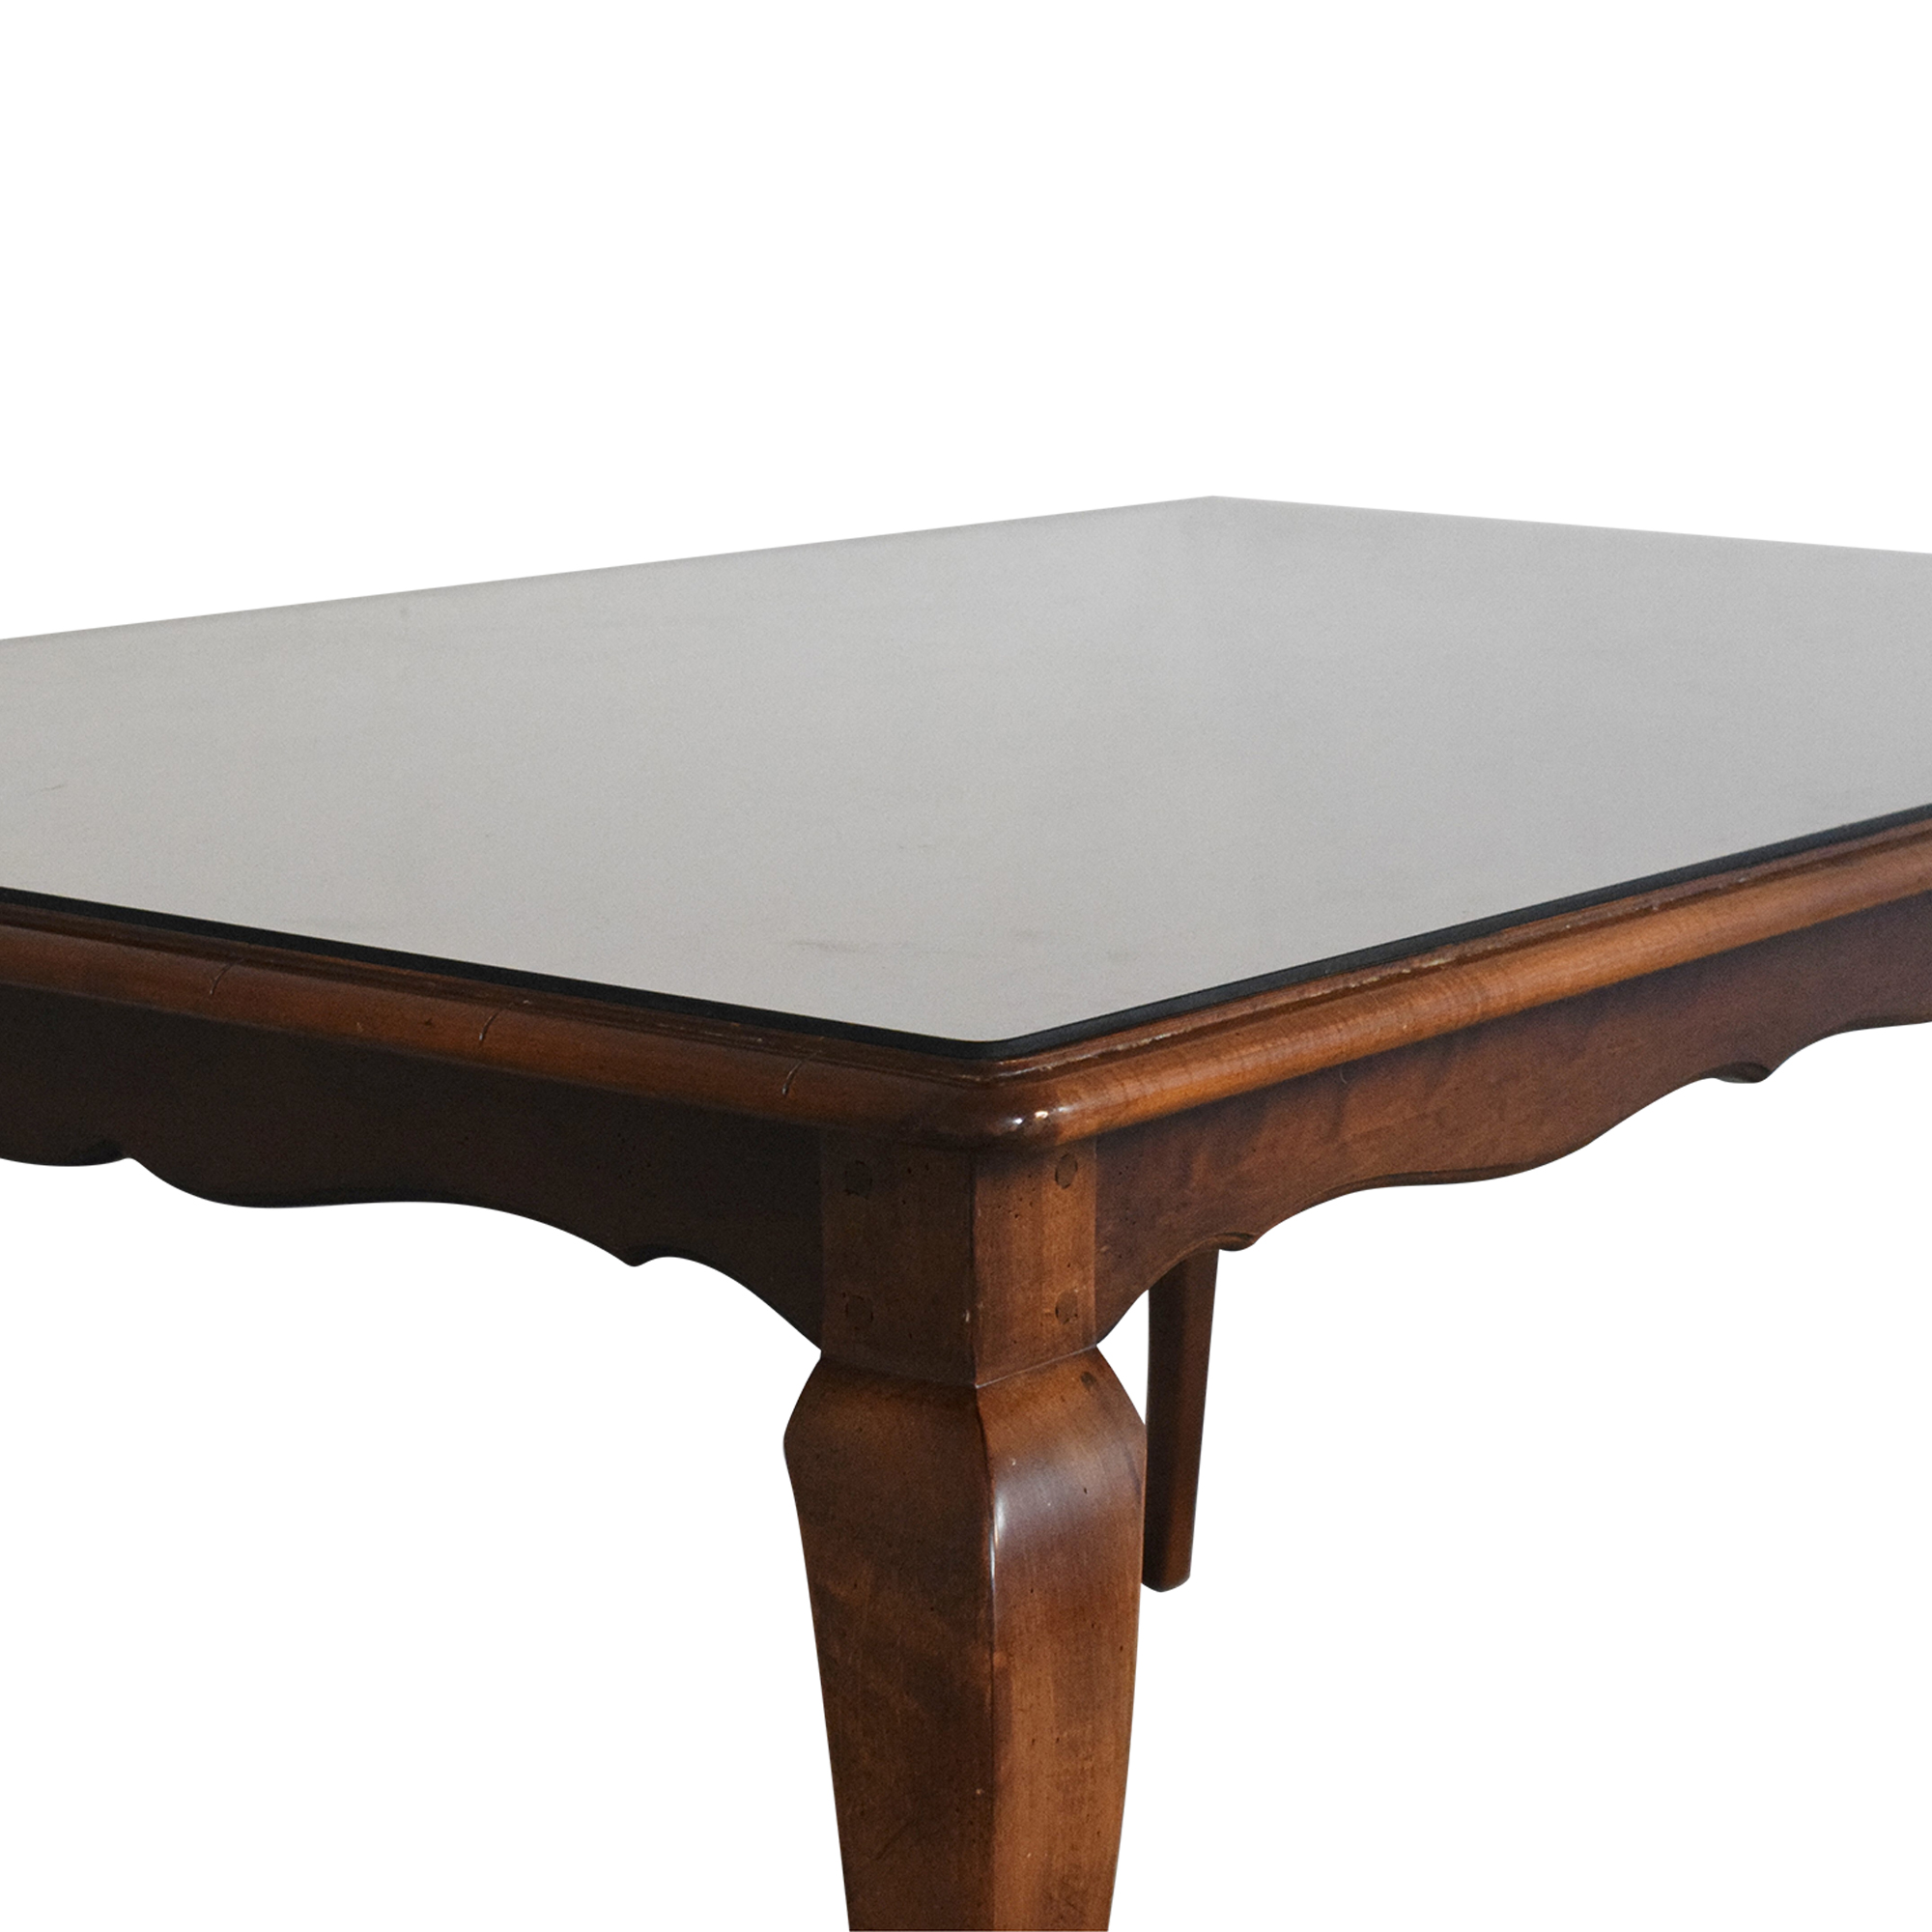 Hickory Chair Hickory Chair Extendable Dining Table second hand